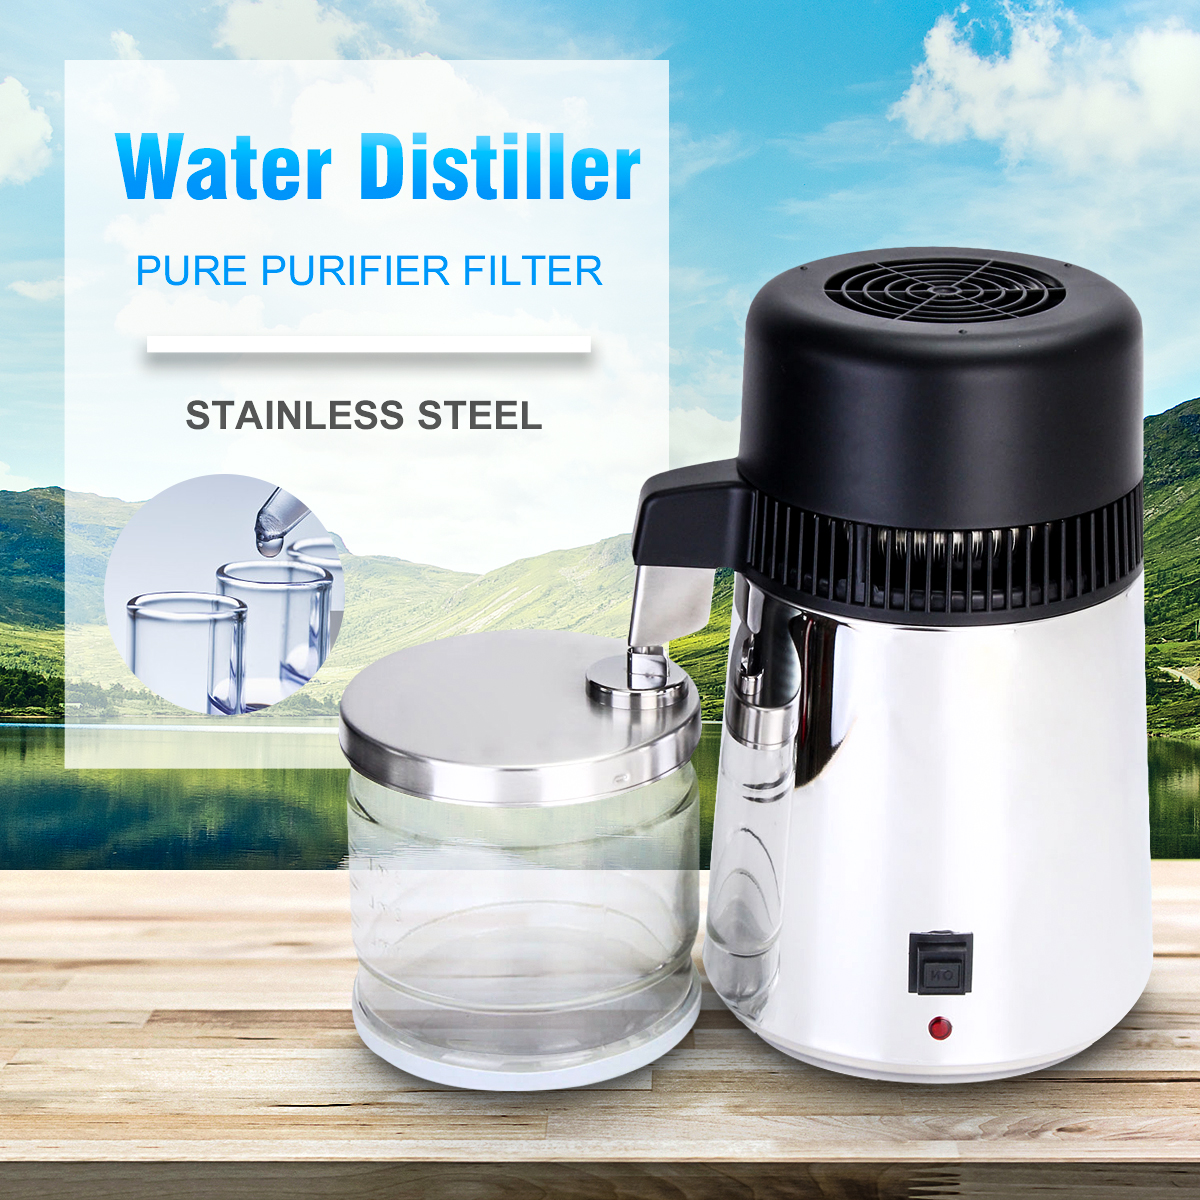 750W 4L Capacity Pure Water Distiller Purifier 304 Stainless Steel Container Filter Distilled Water Device 220V